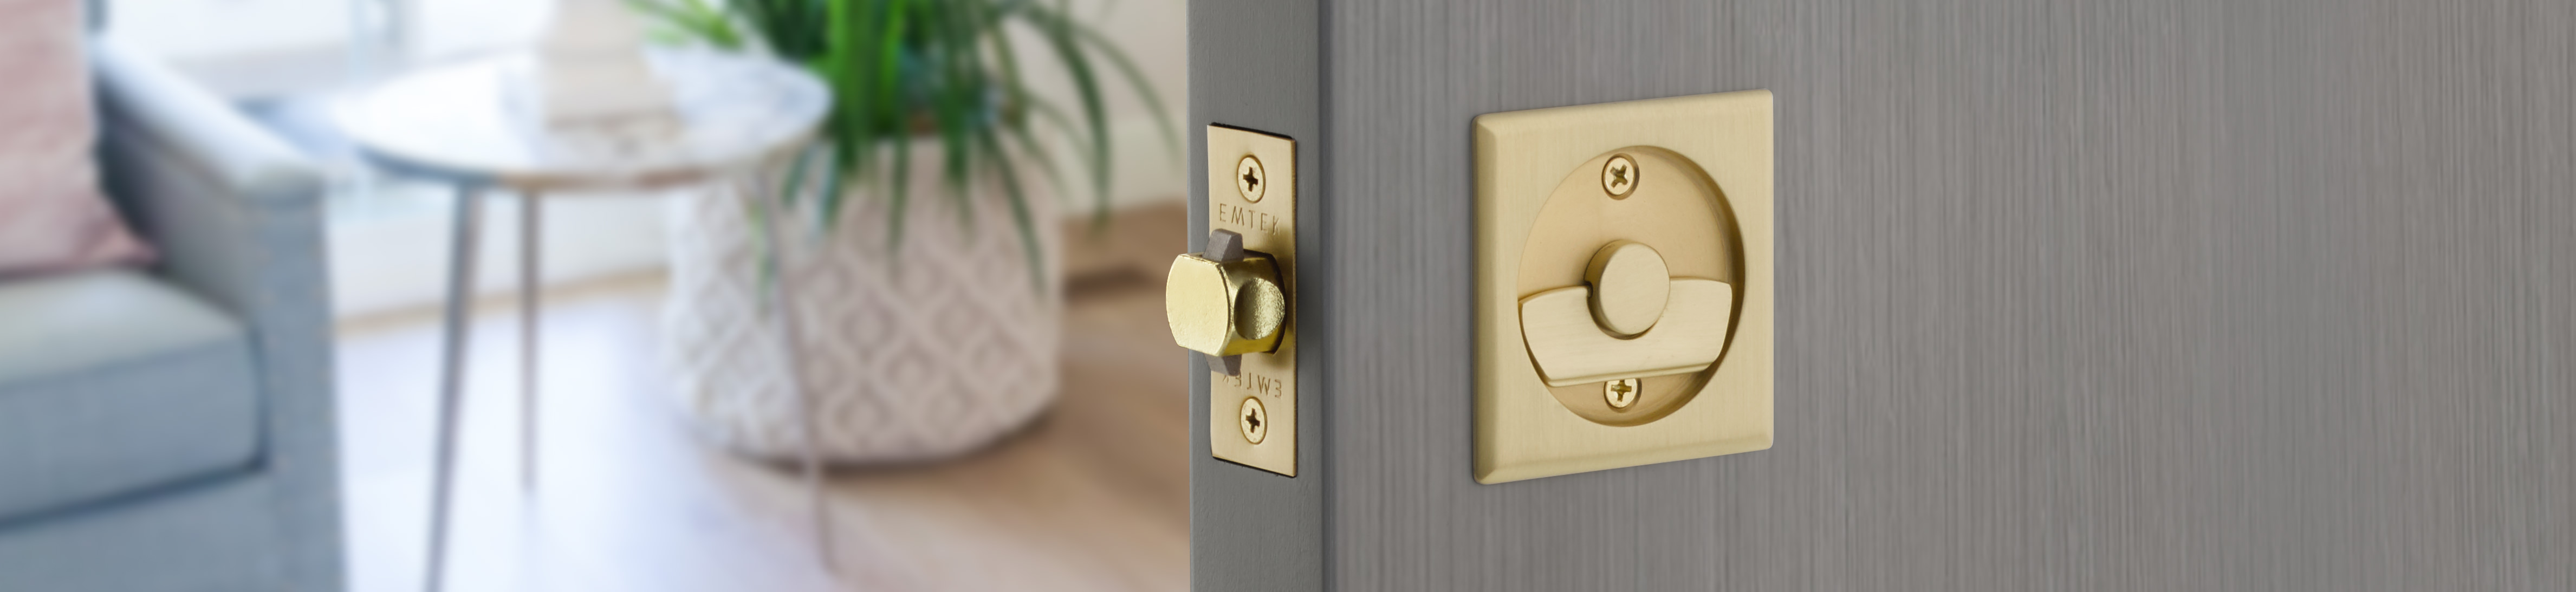 Door Hardware Knobs Pulls Products Services Emtek Products Inc